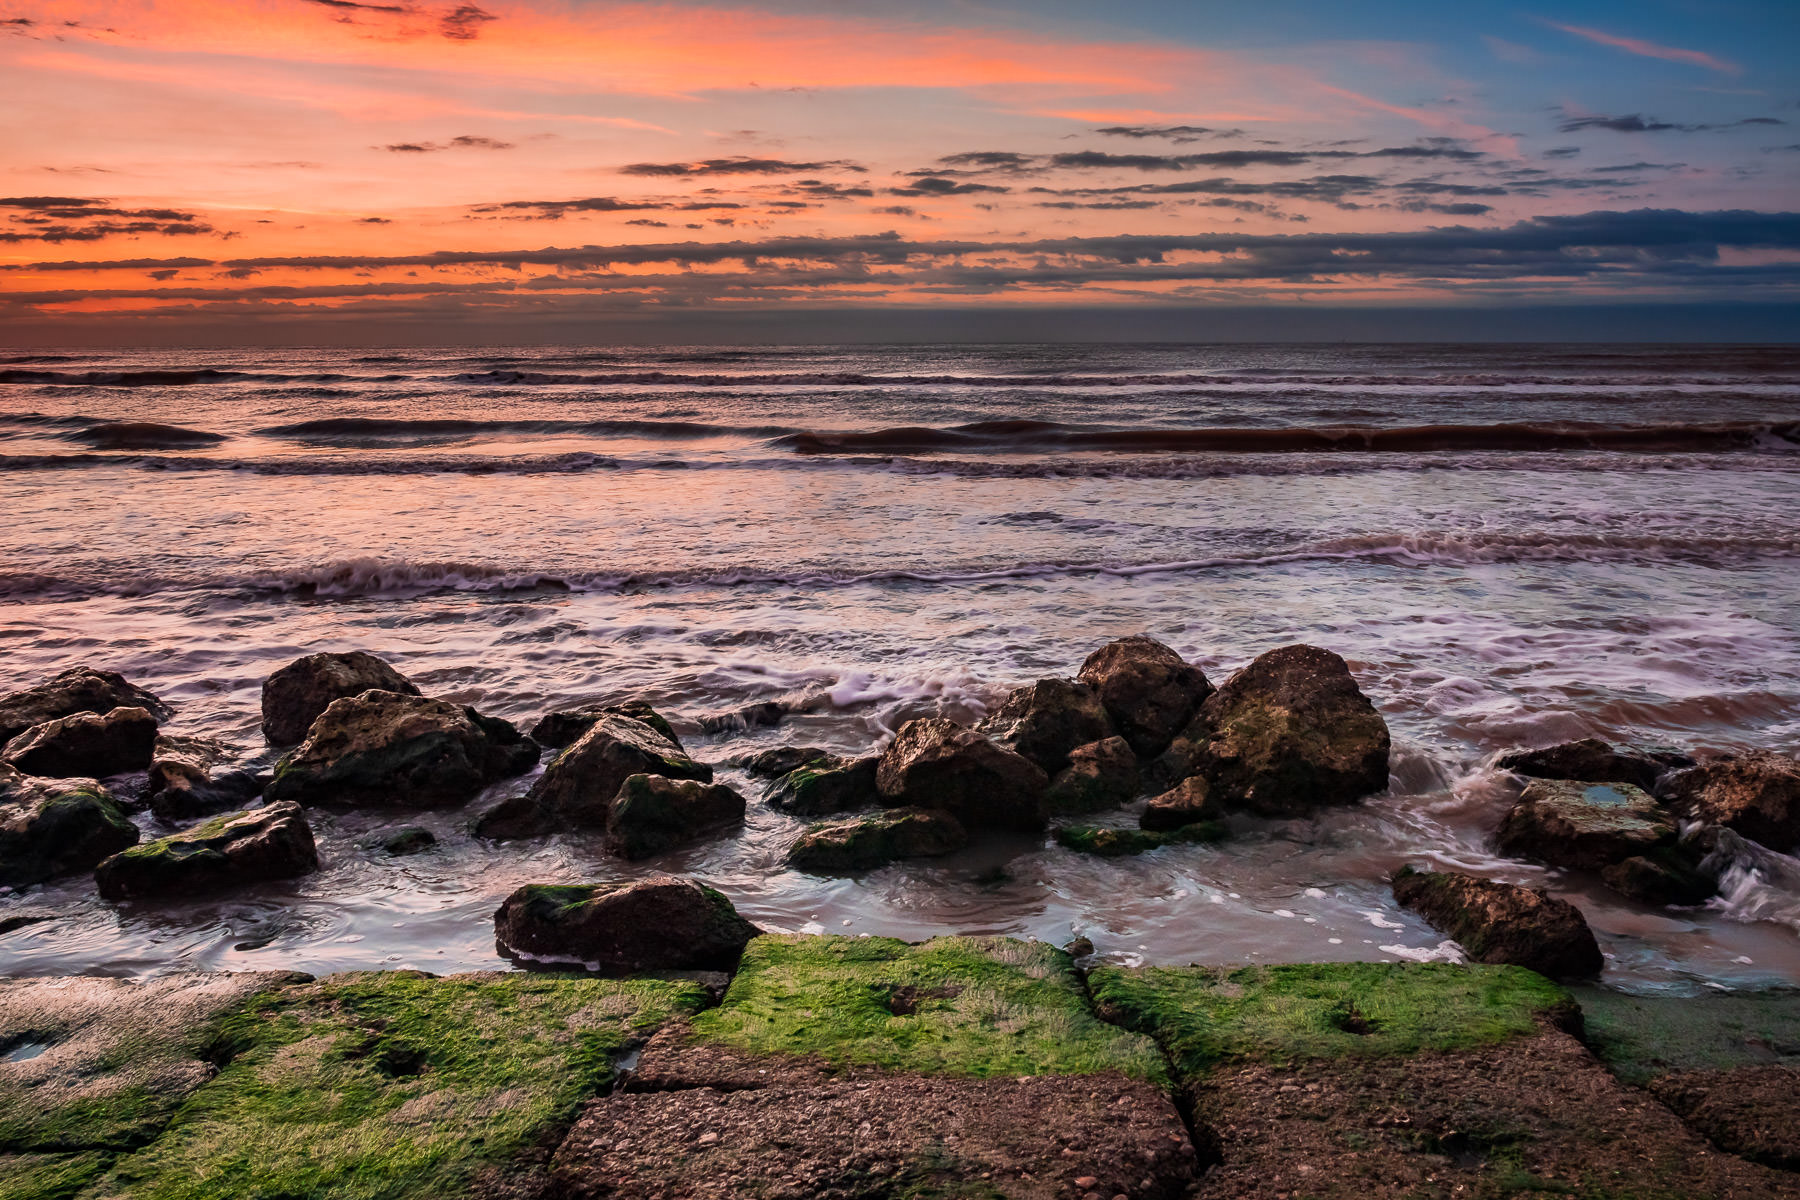 The first light of day hits granite blocks along the beach at the base of the Galveston Seawall, Galveston, Texas.